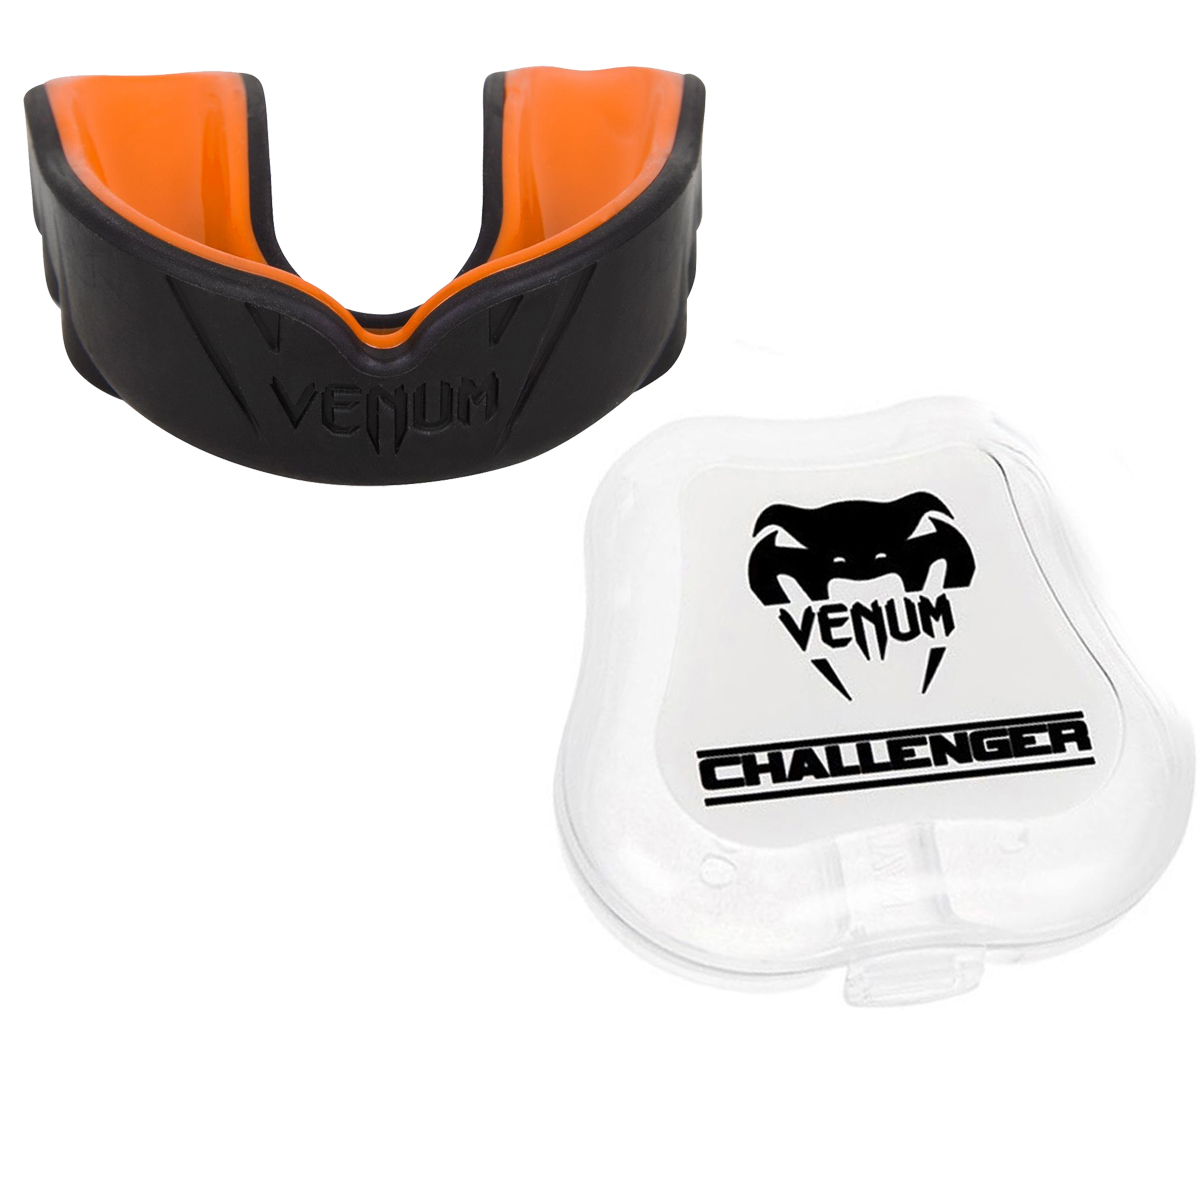 Venum Challenger Mouthguard - Black/Orange